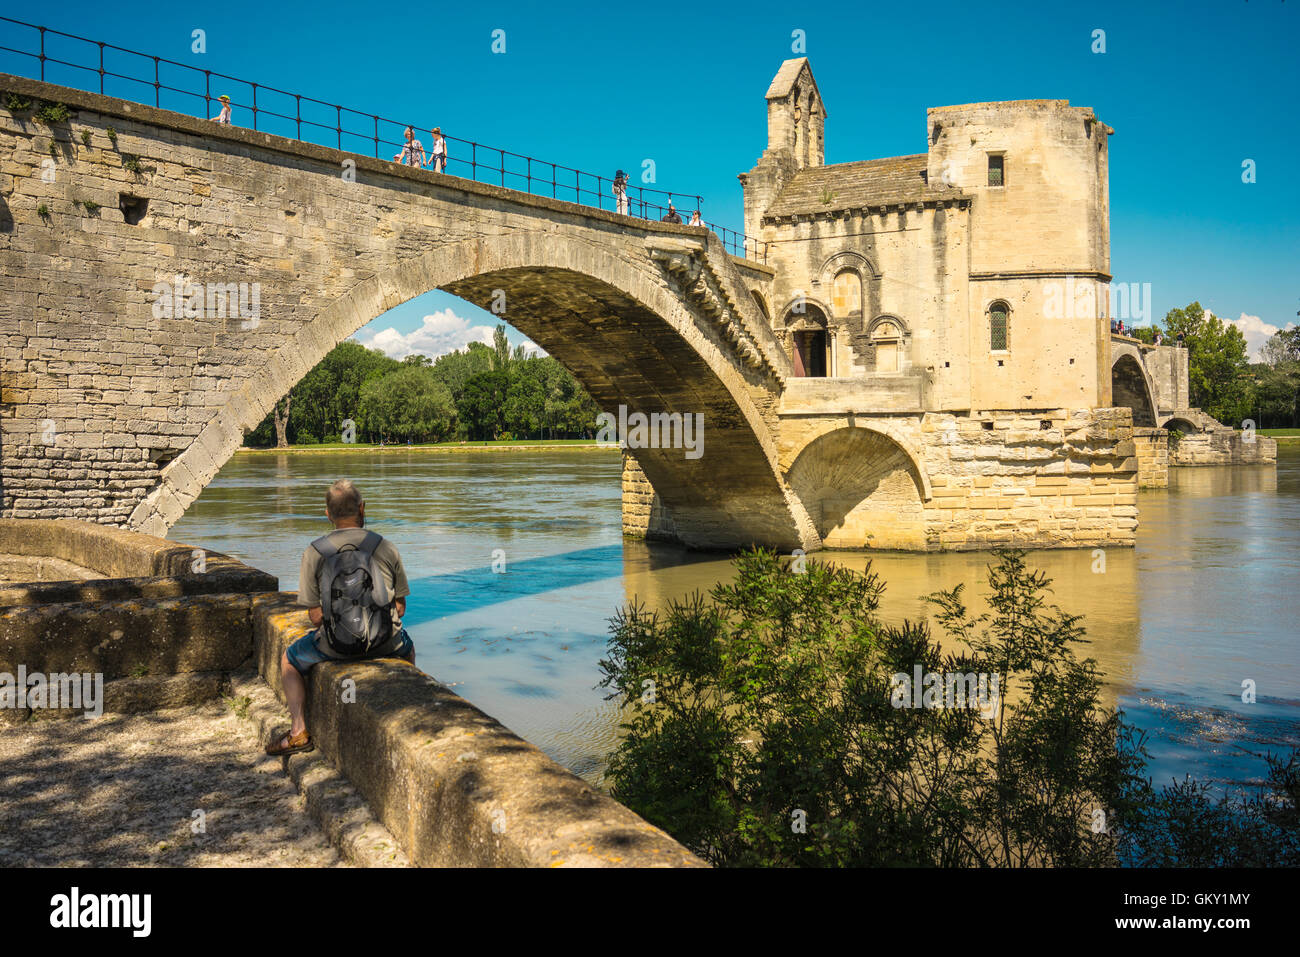 Pont d'Avignon, a famous medieval bridge in the town of Avignon, in southern France. Stock Photo